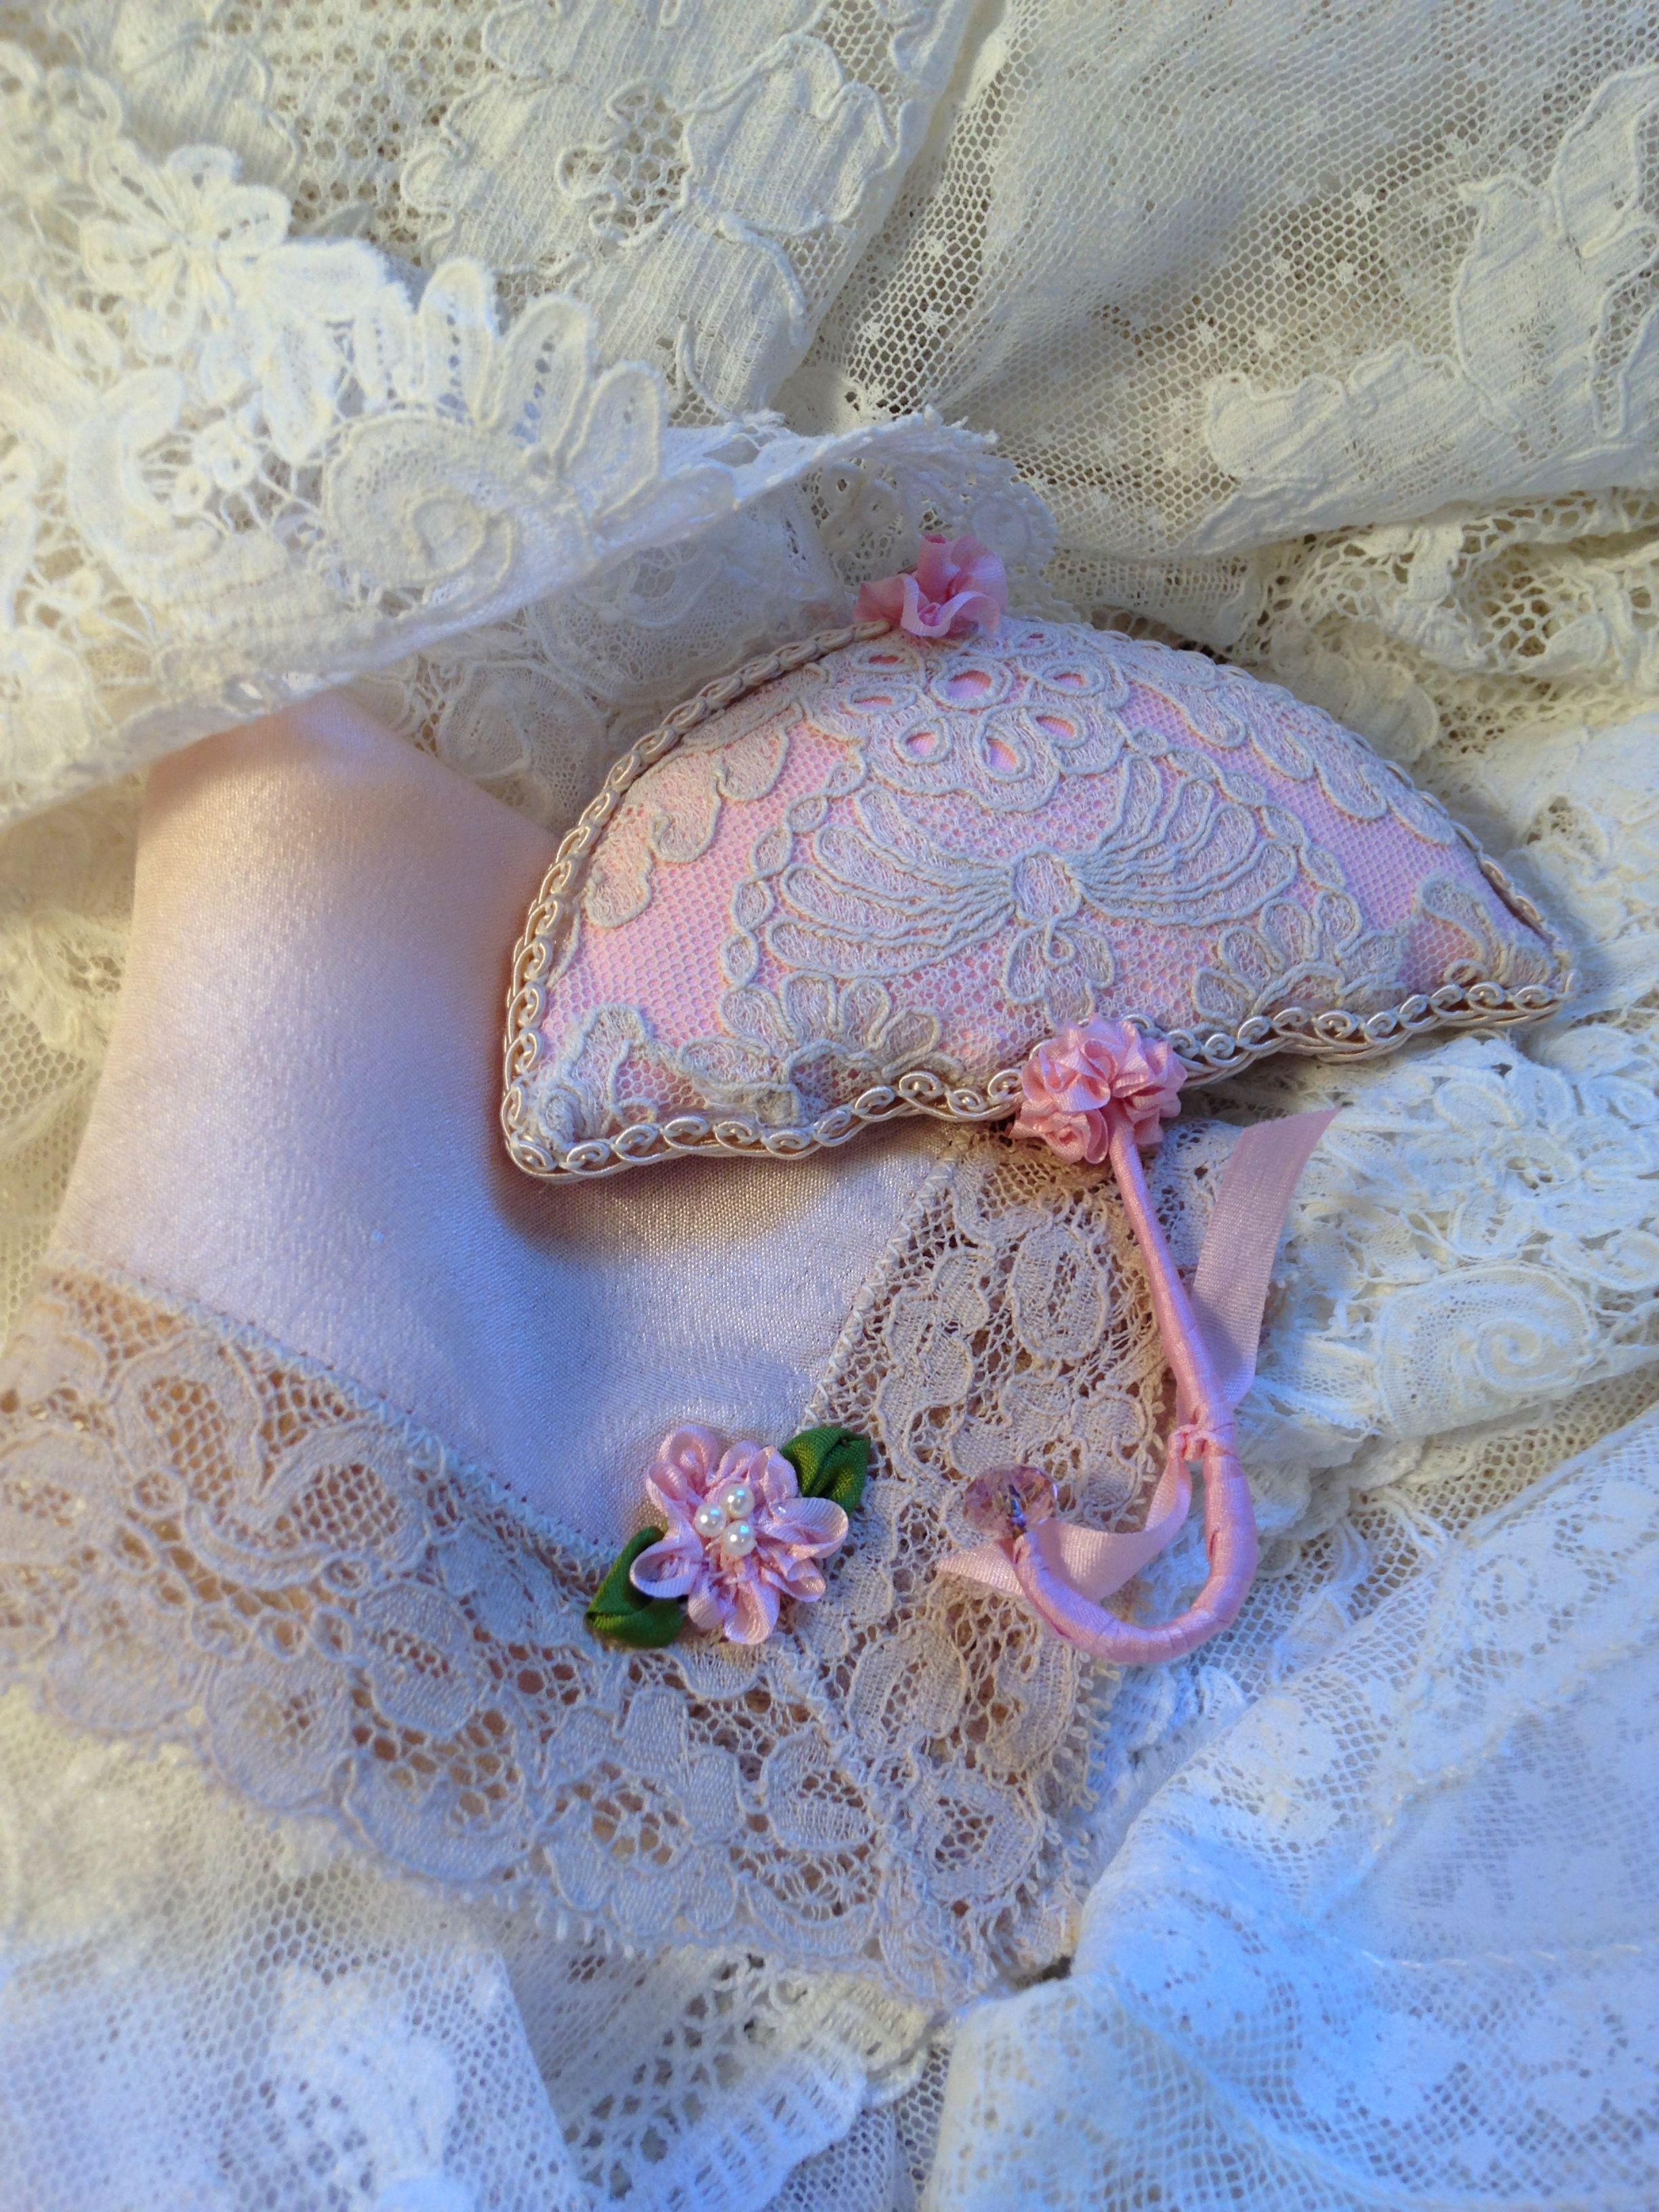 Lace handkerchief and small umbrella ornament. Silk ribbonwork added by Kathleen.